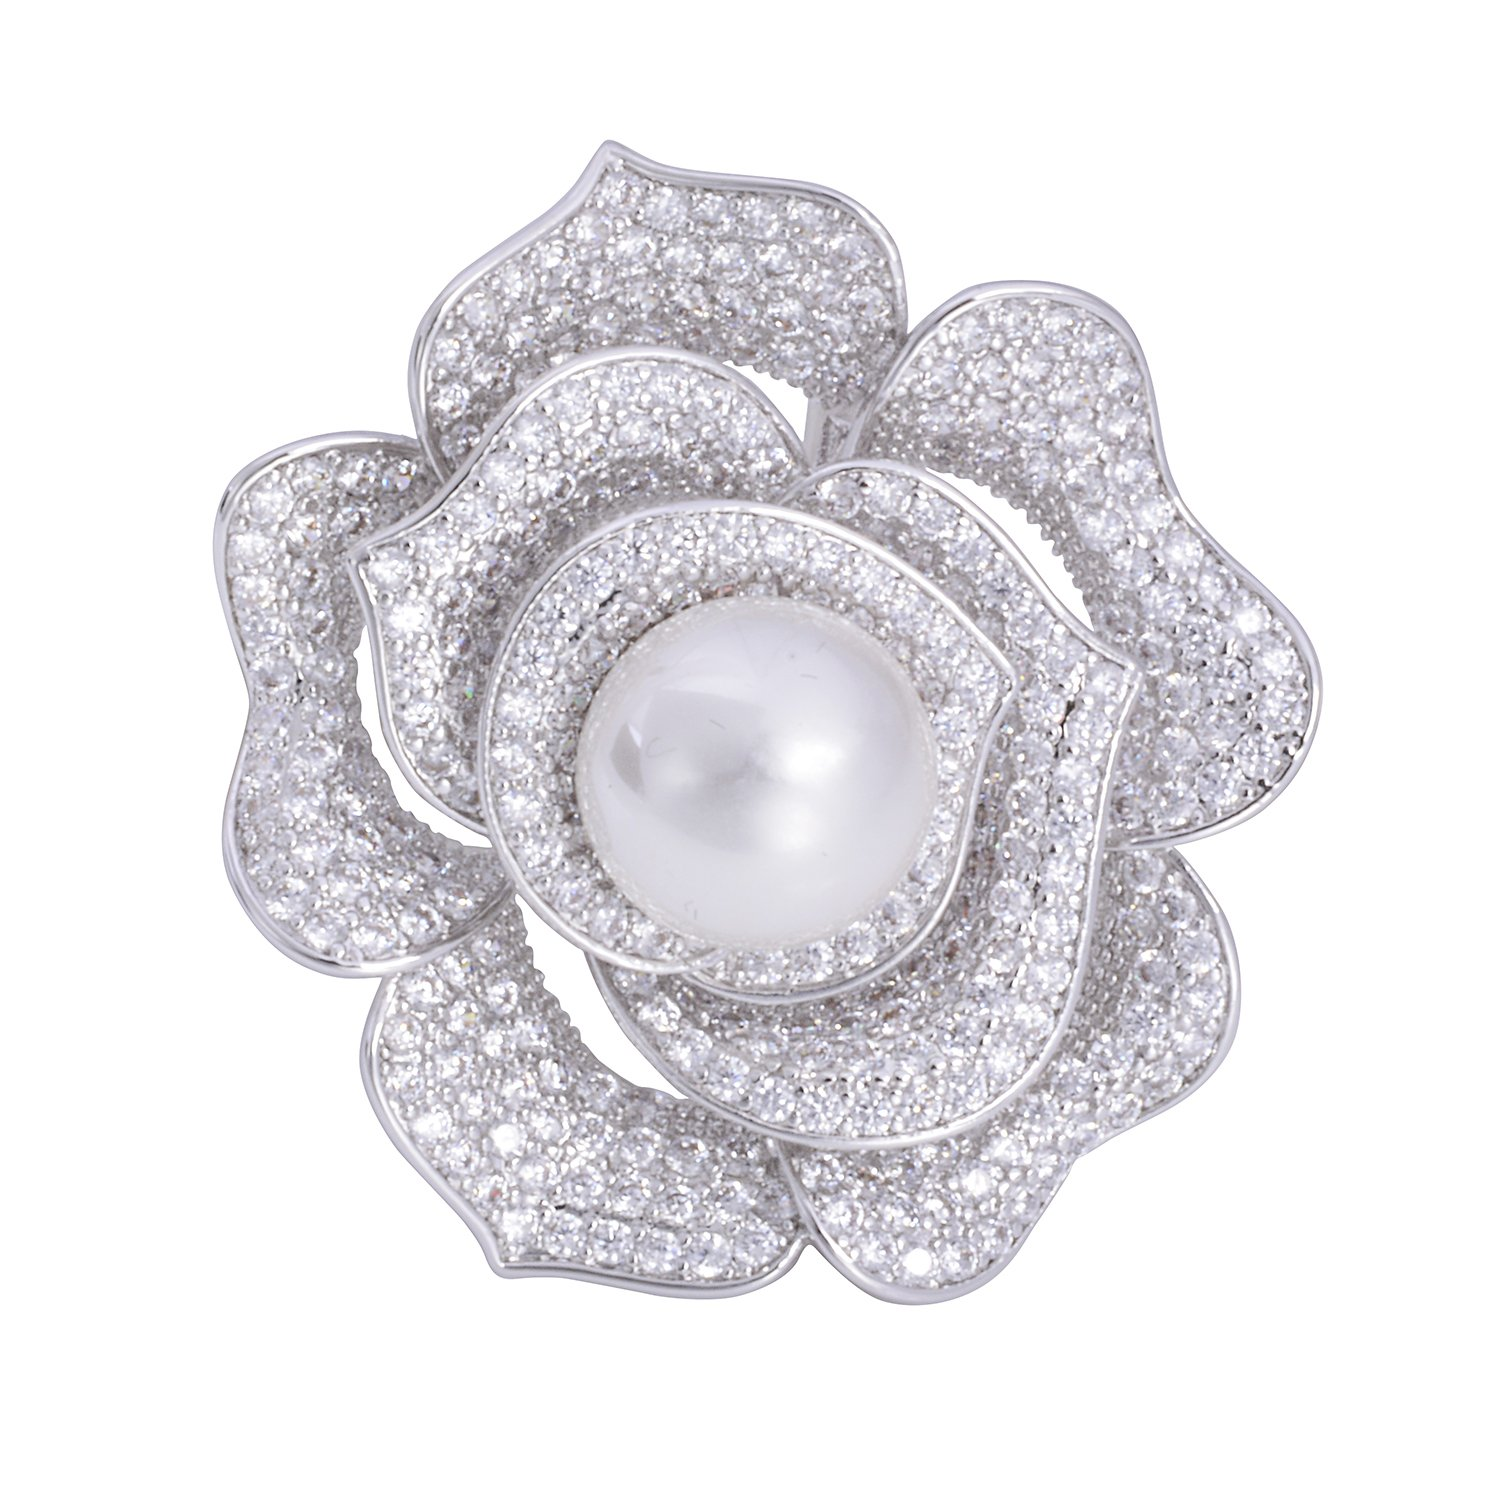 OBONNIE Sparking Micro Pave Layered Petal Pearl Camellia Rose Flower Brooch Pin Wedding Bridal Jewelry (Rose) by OBONNIE